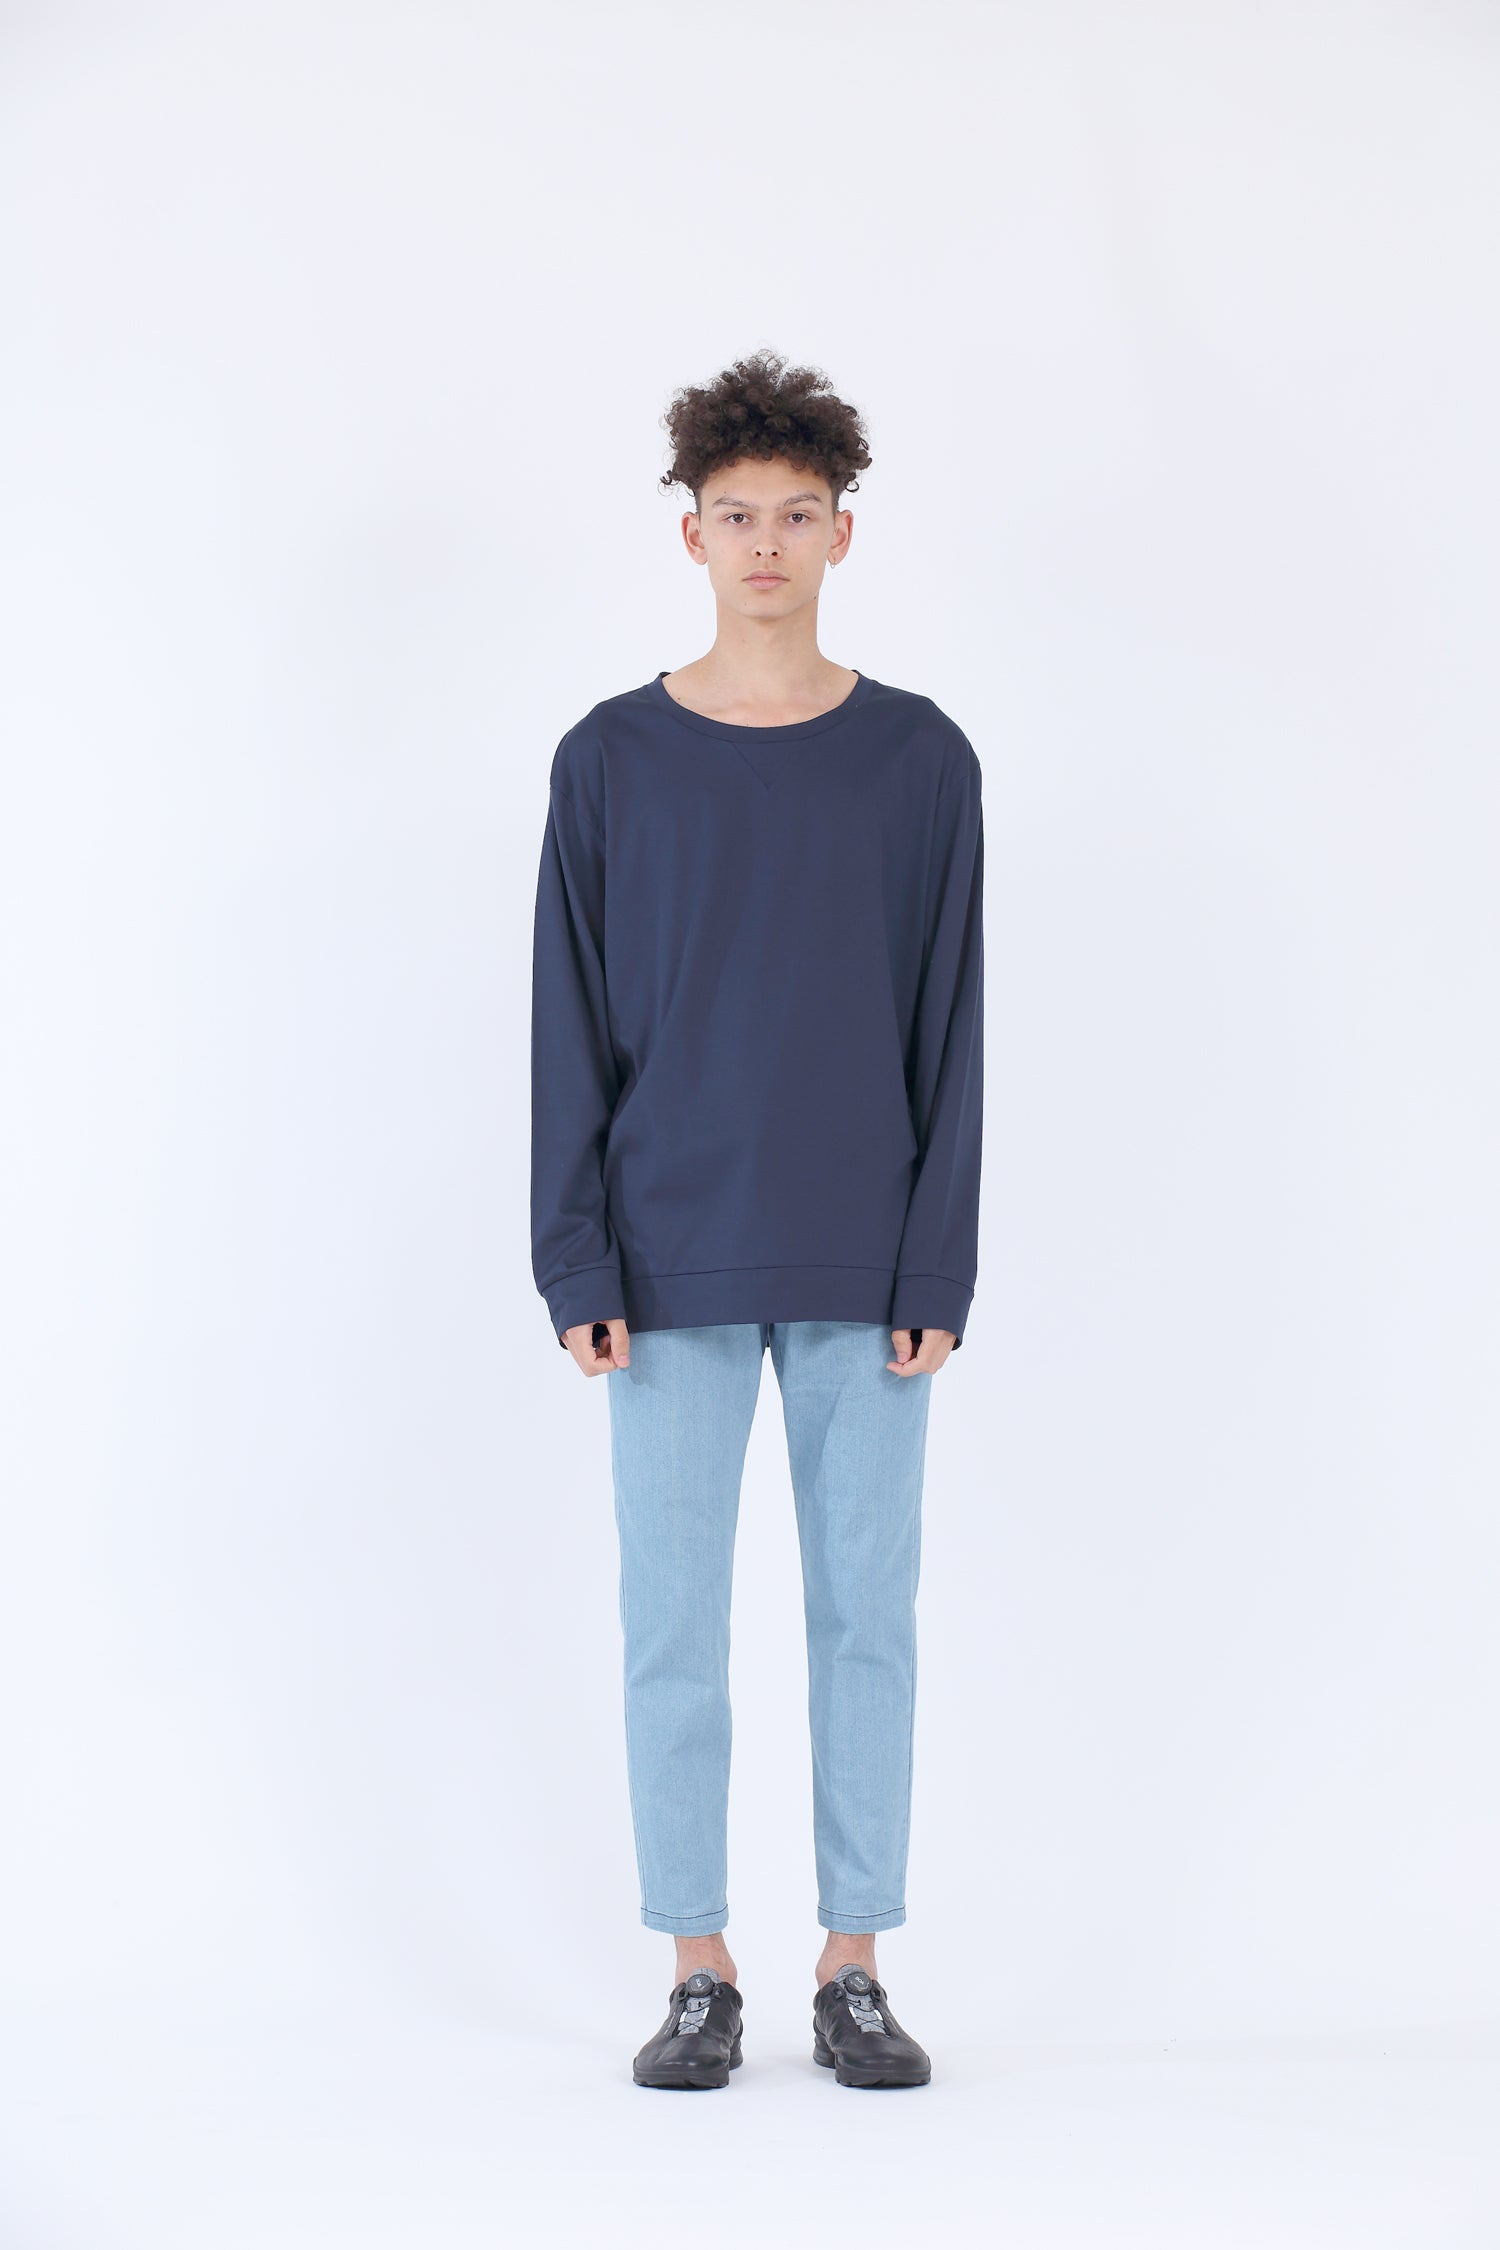 EXTRA FINE L/S-T